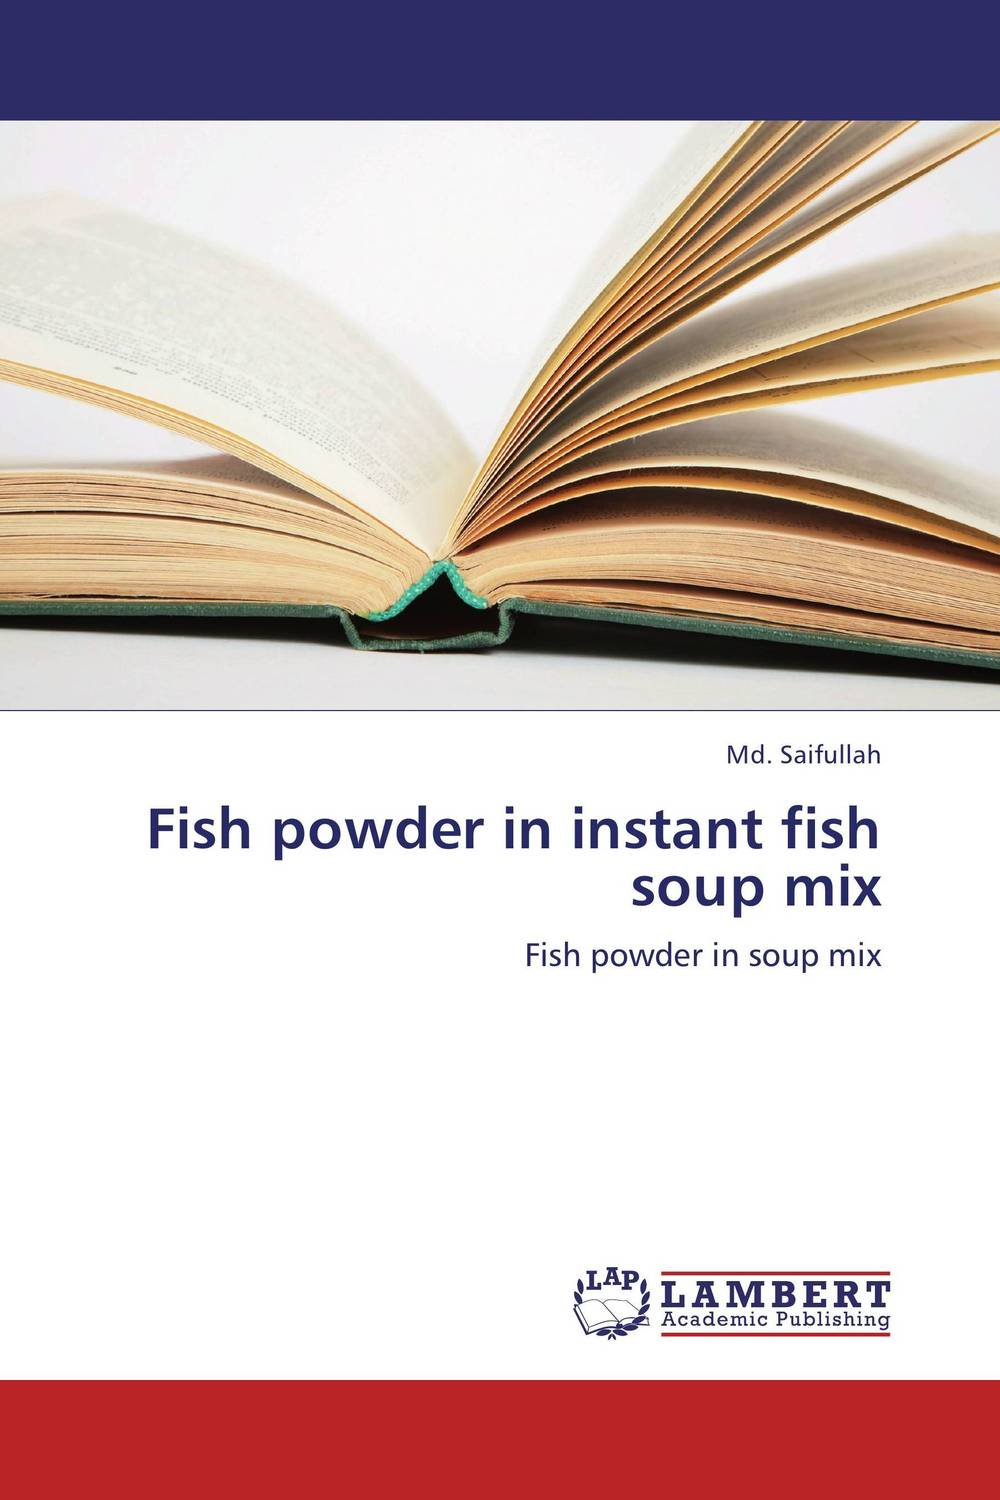 Fish powder in instant fish soup mix environment friendly long handle a soup spoon